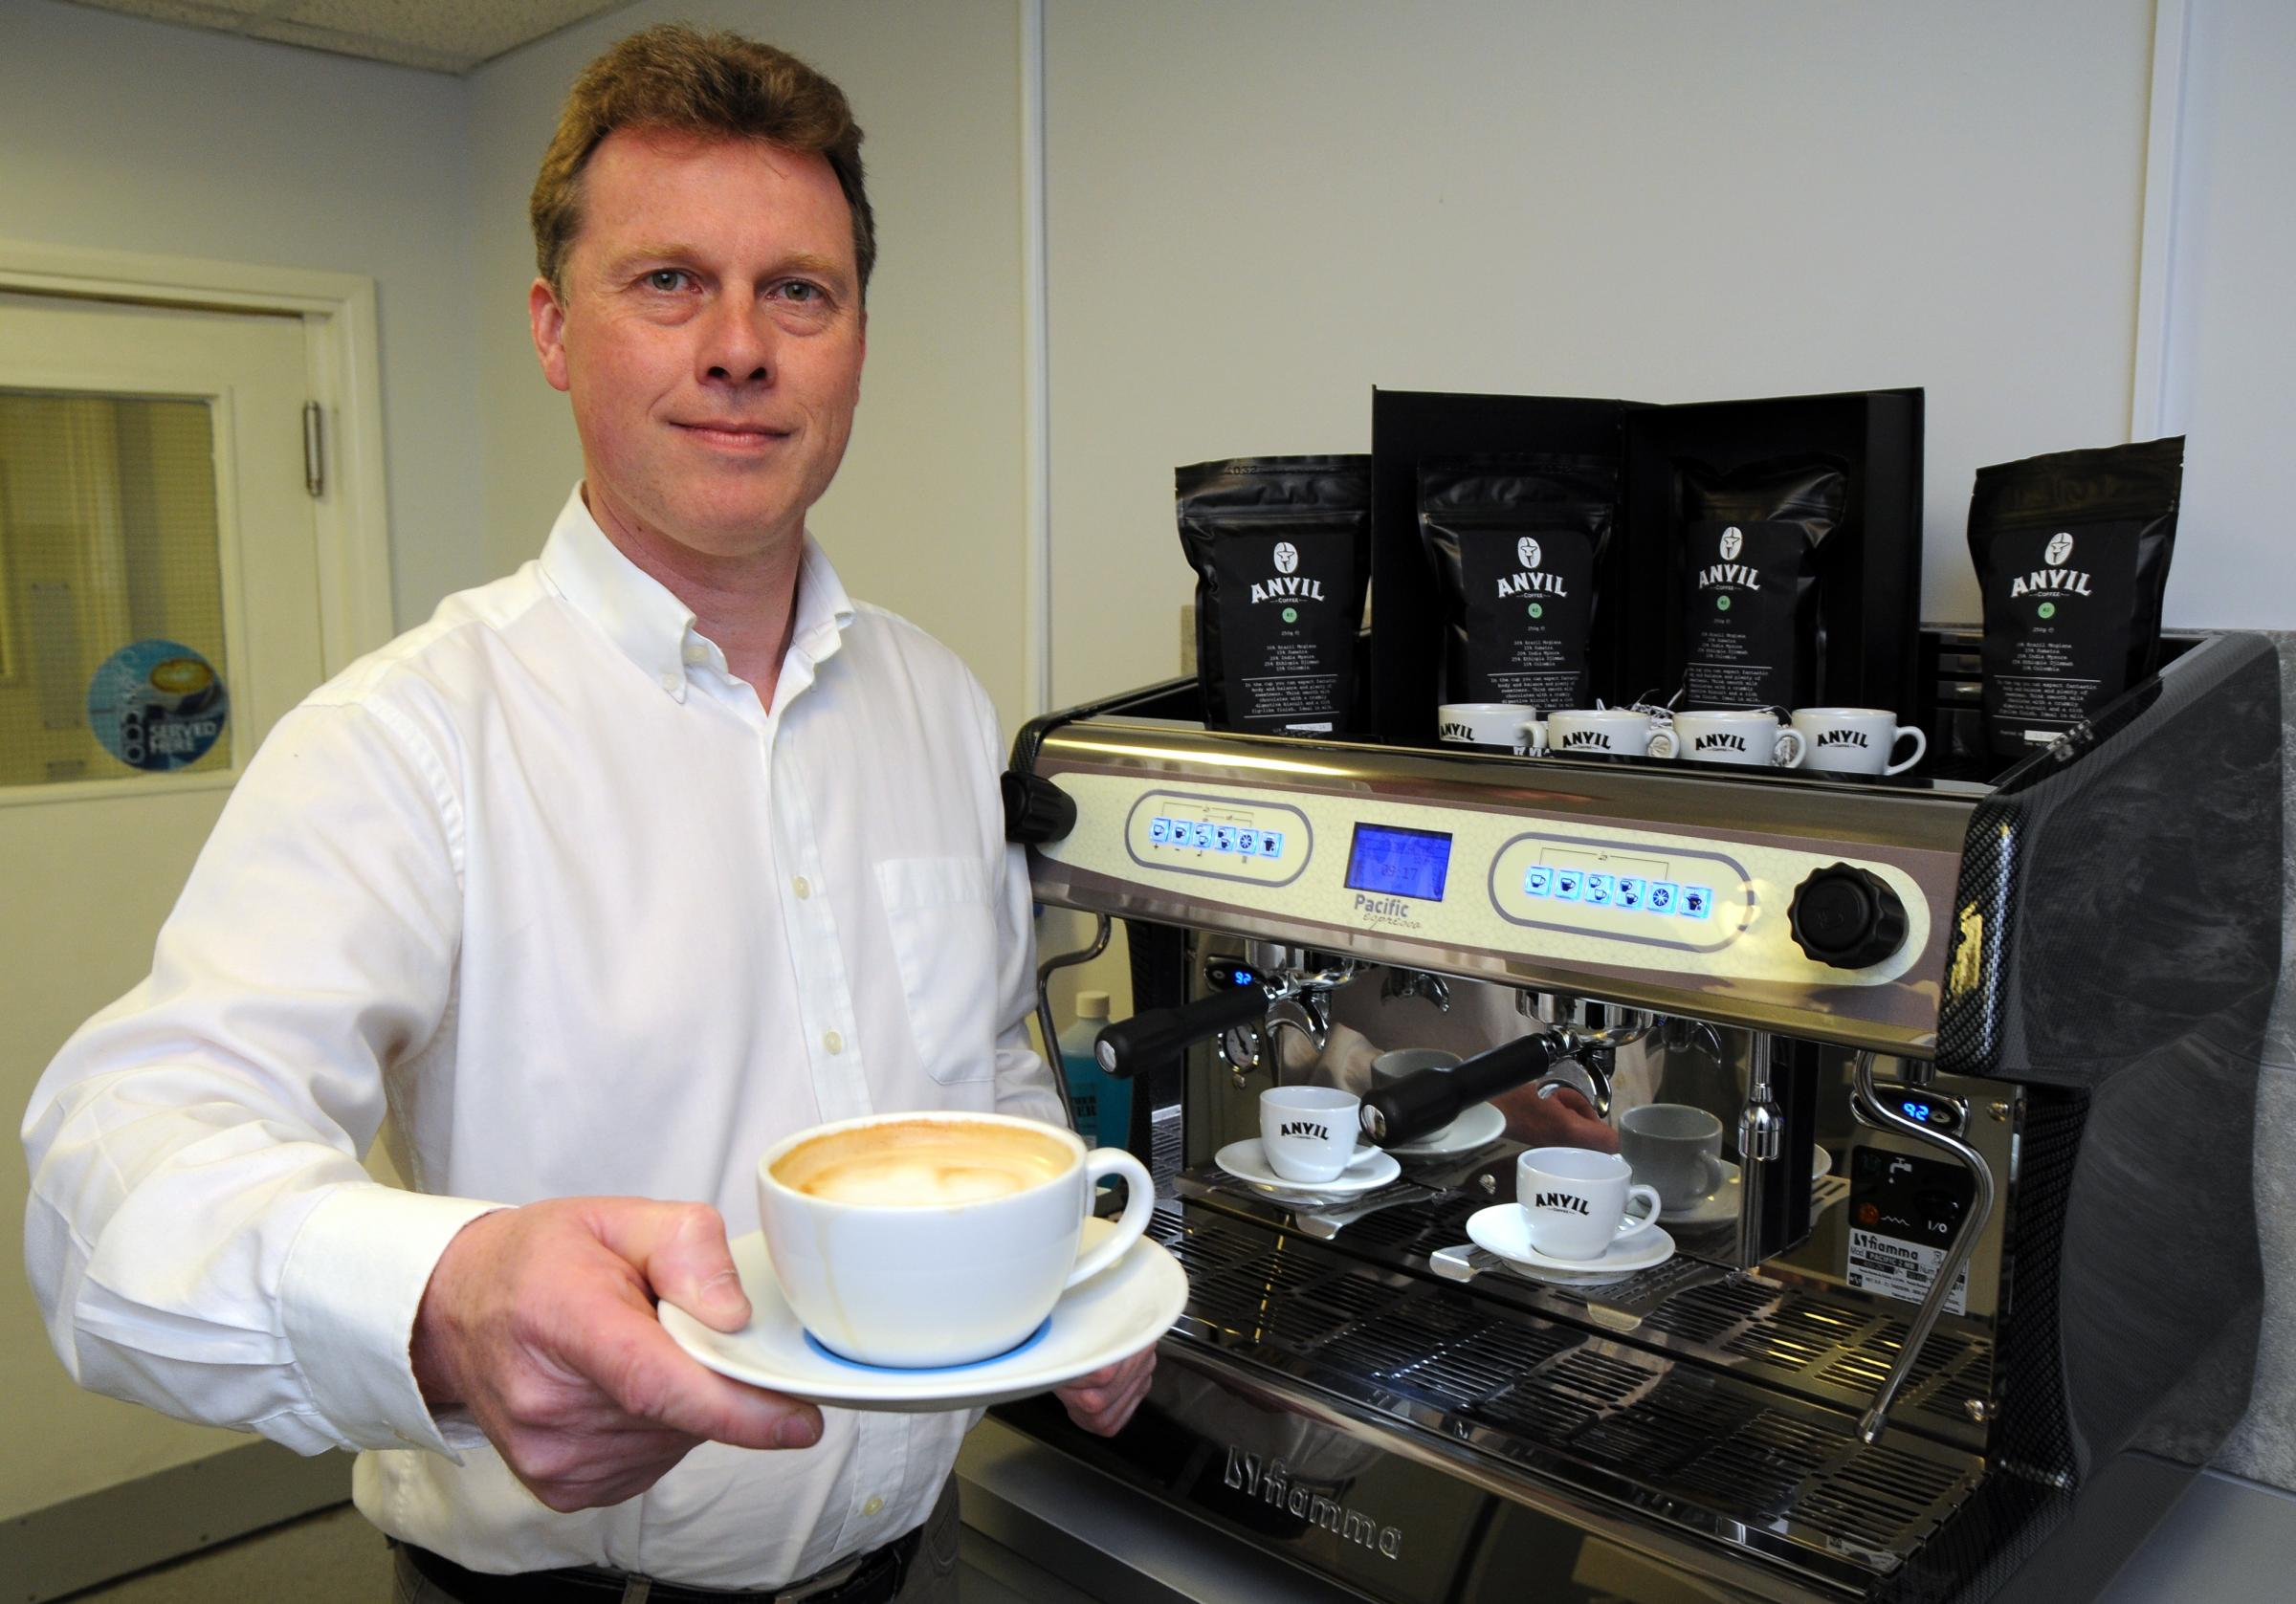 Qualitasse general manager Martin Perry